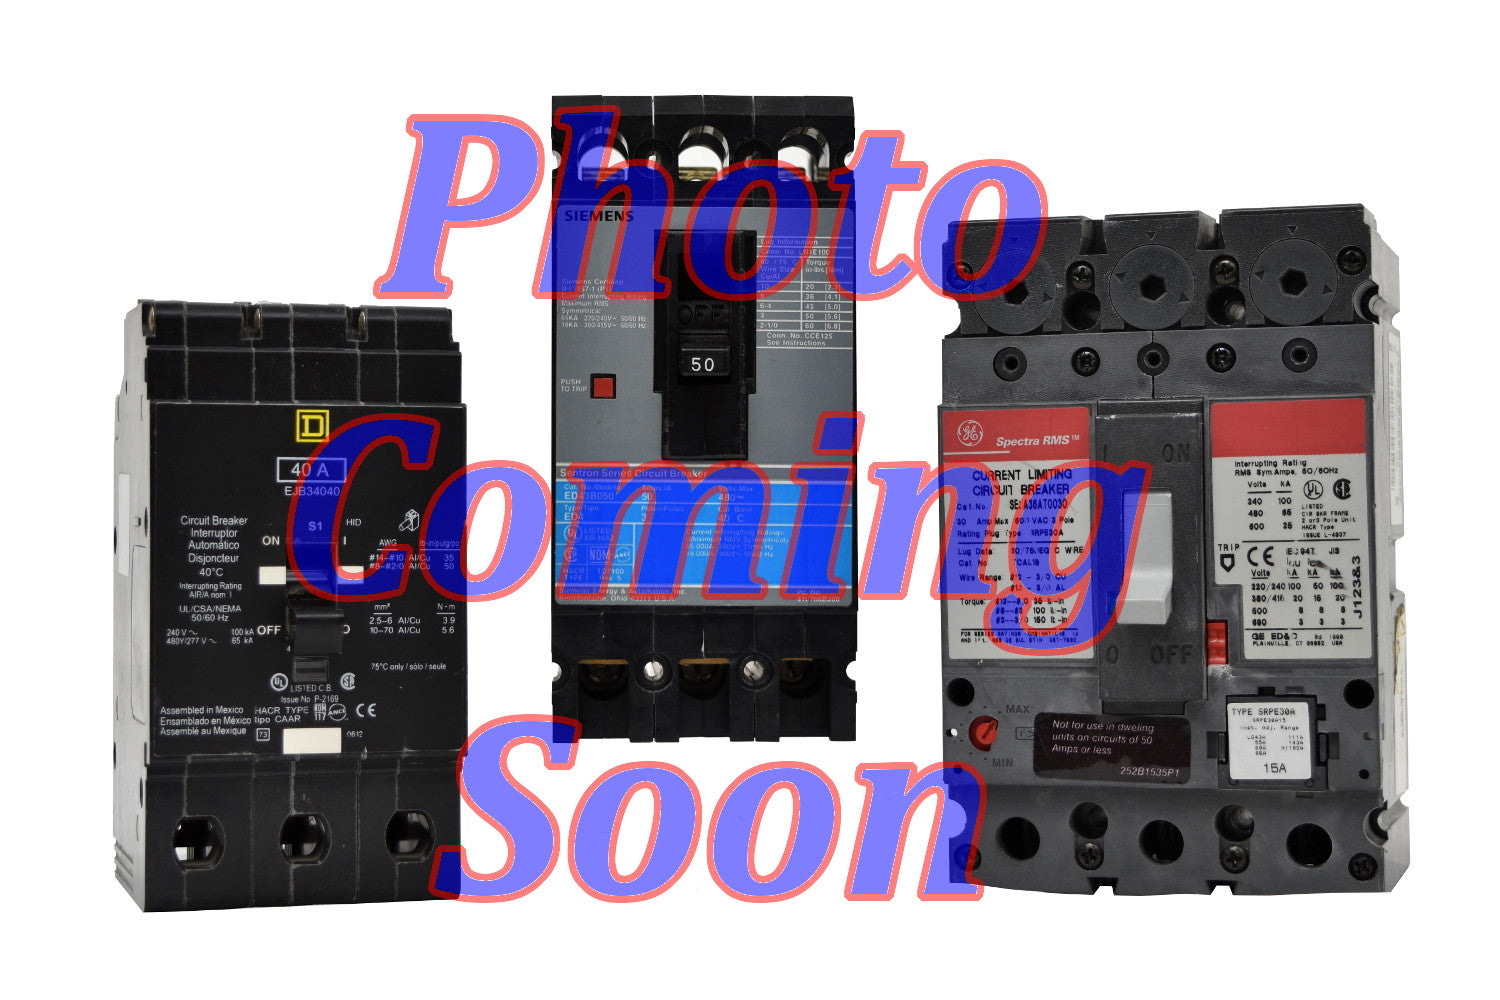 General Electric FCL36TE090R1 Circuit Breakers